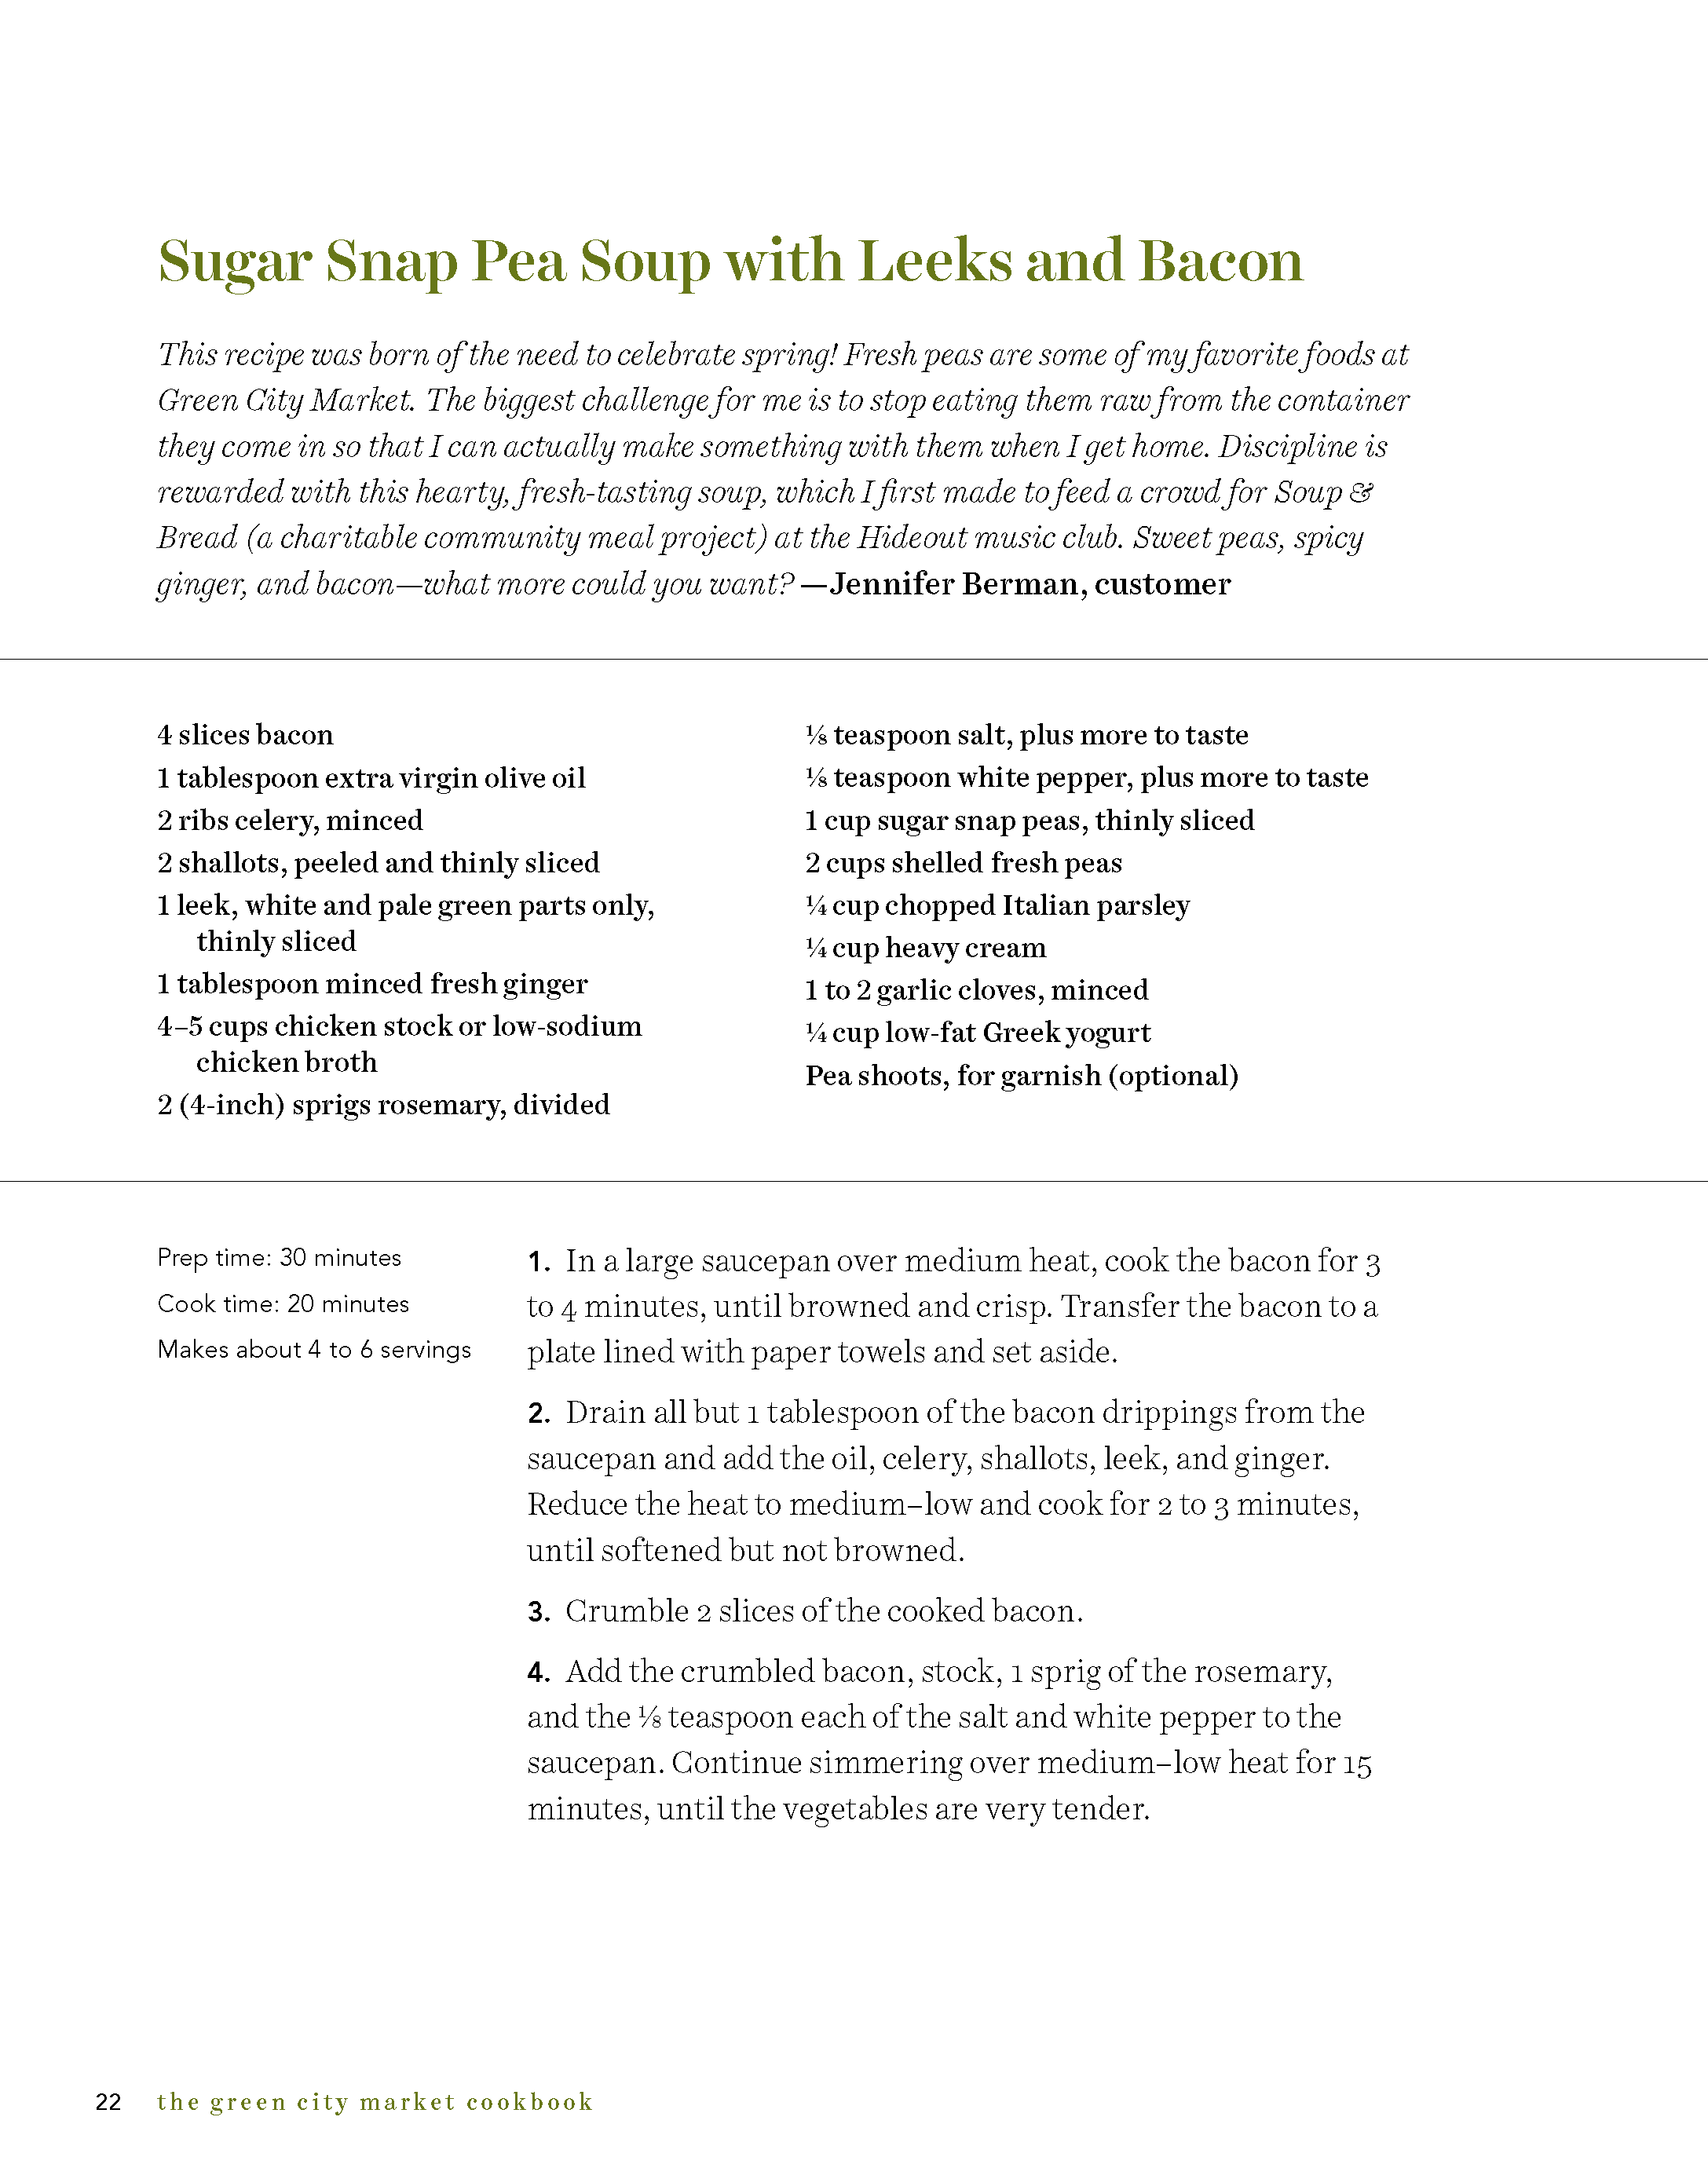 Green City Market Cookbook_Page_09.png